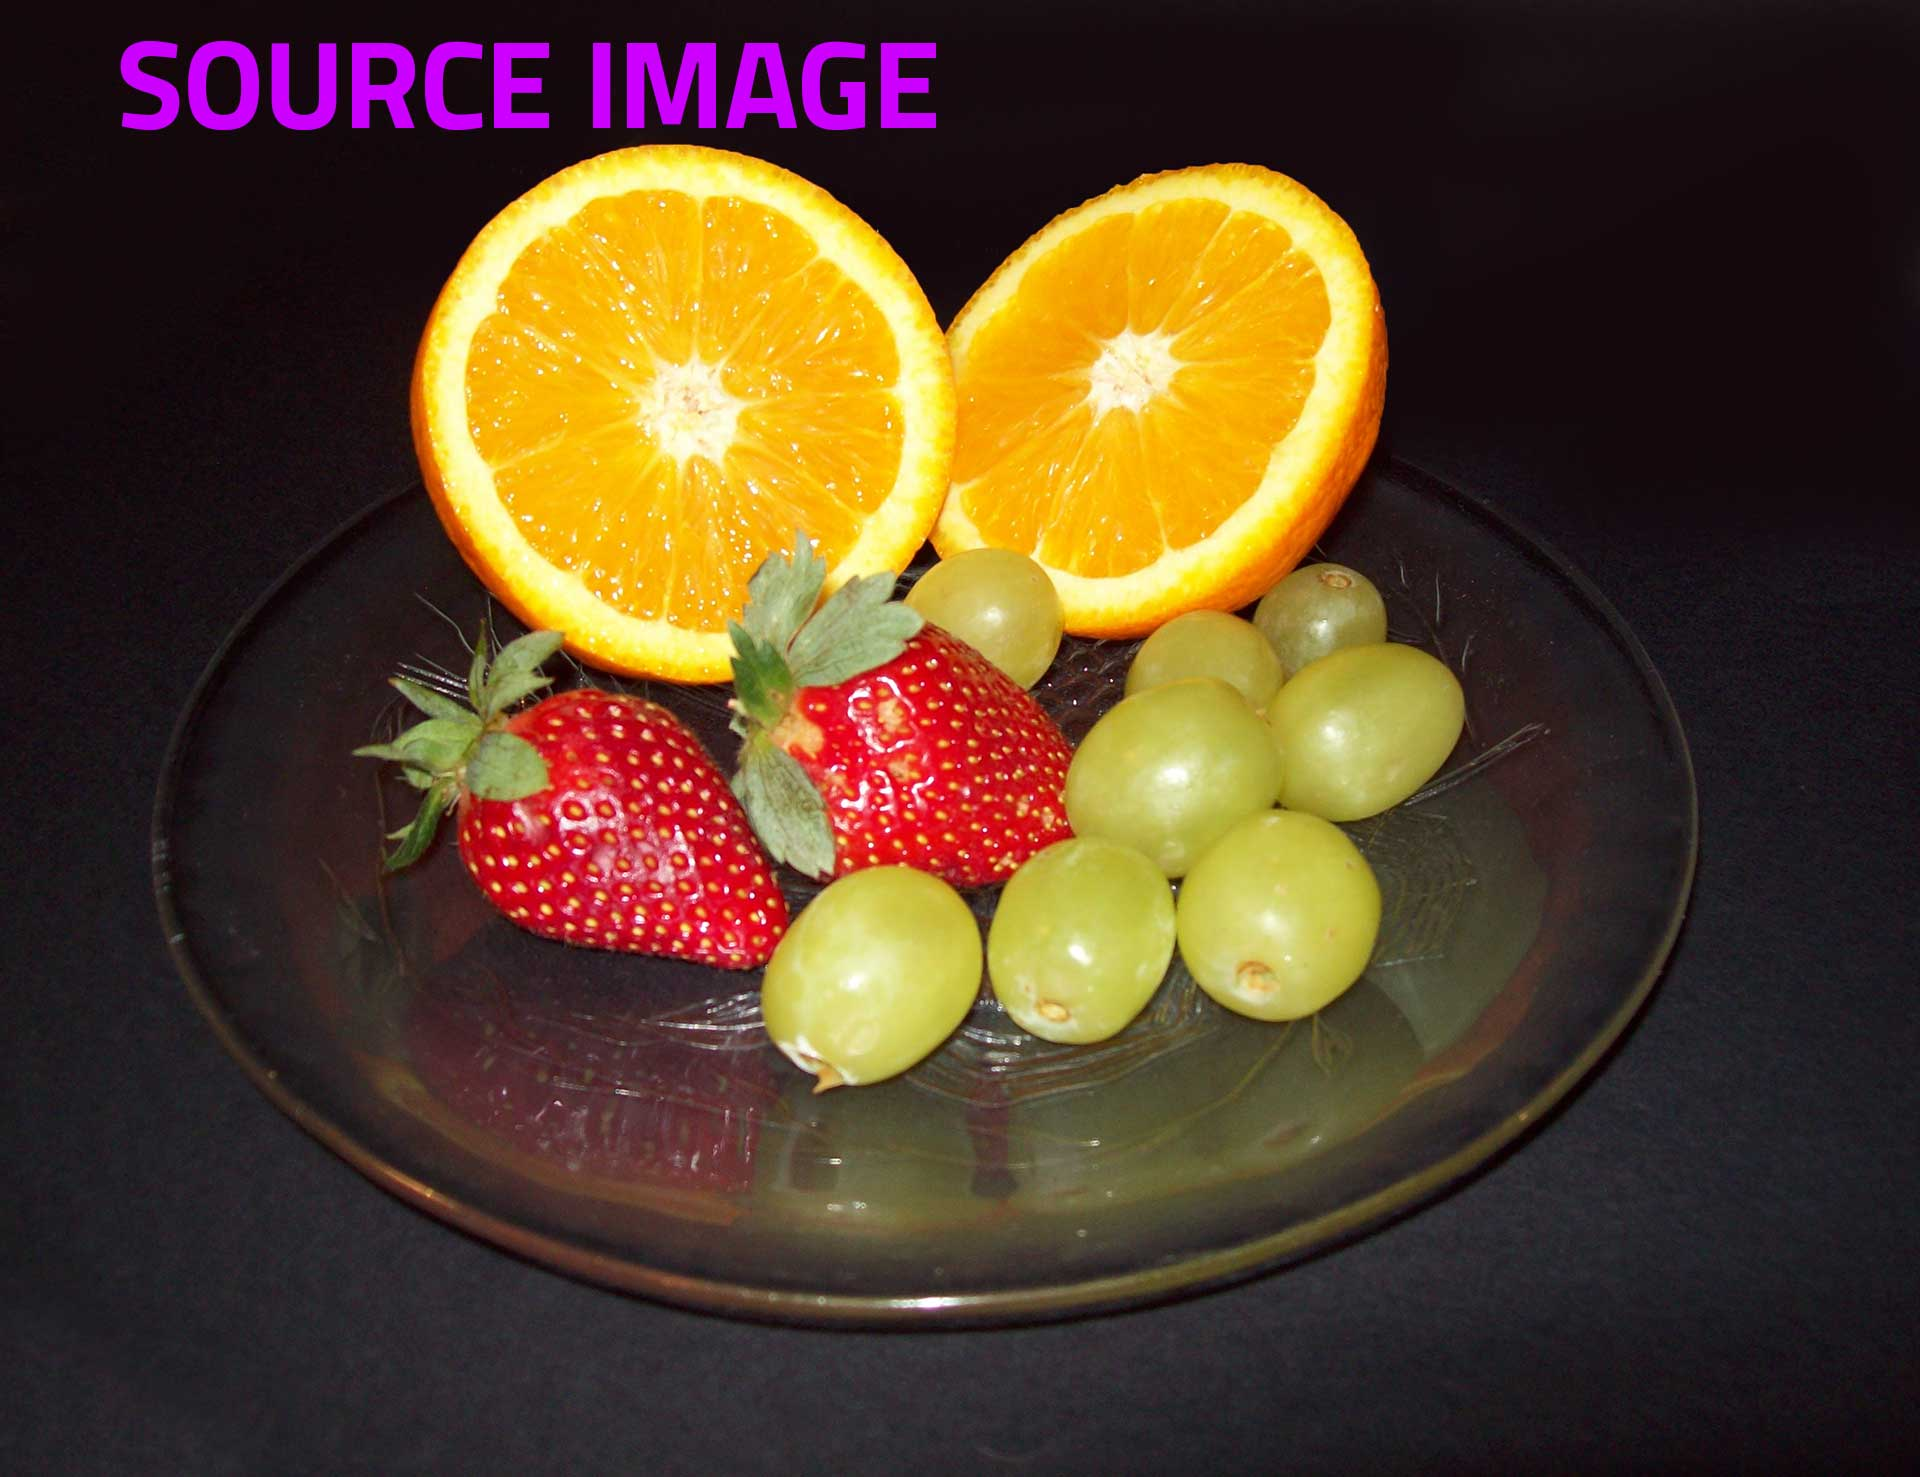 Photorealist painting - Still Life With Fruit - Source image